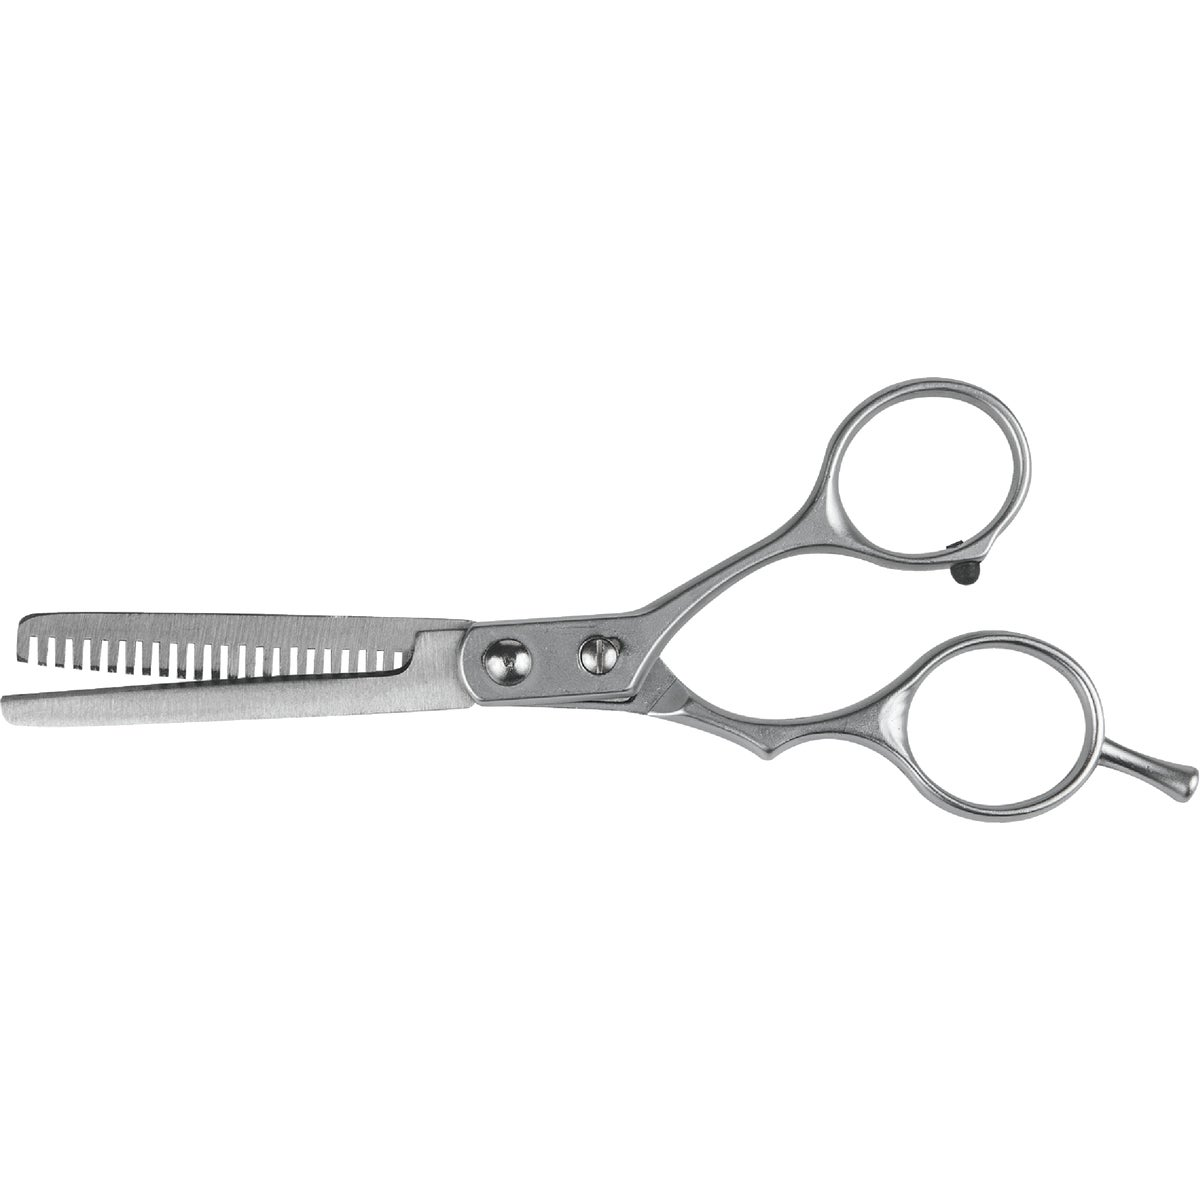 "BARBER 6"" THINNING SHEAR"